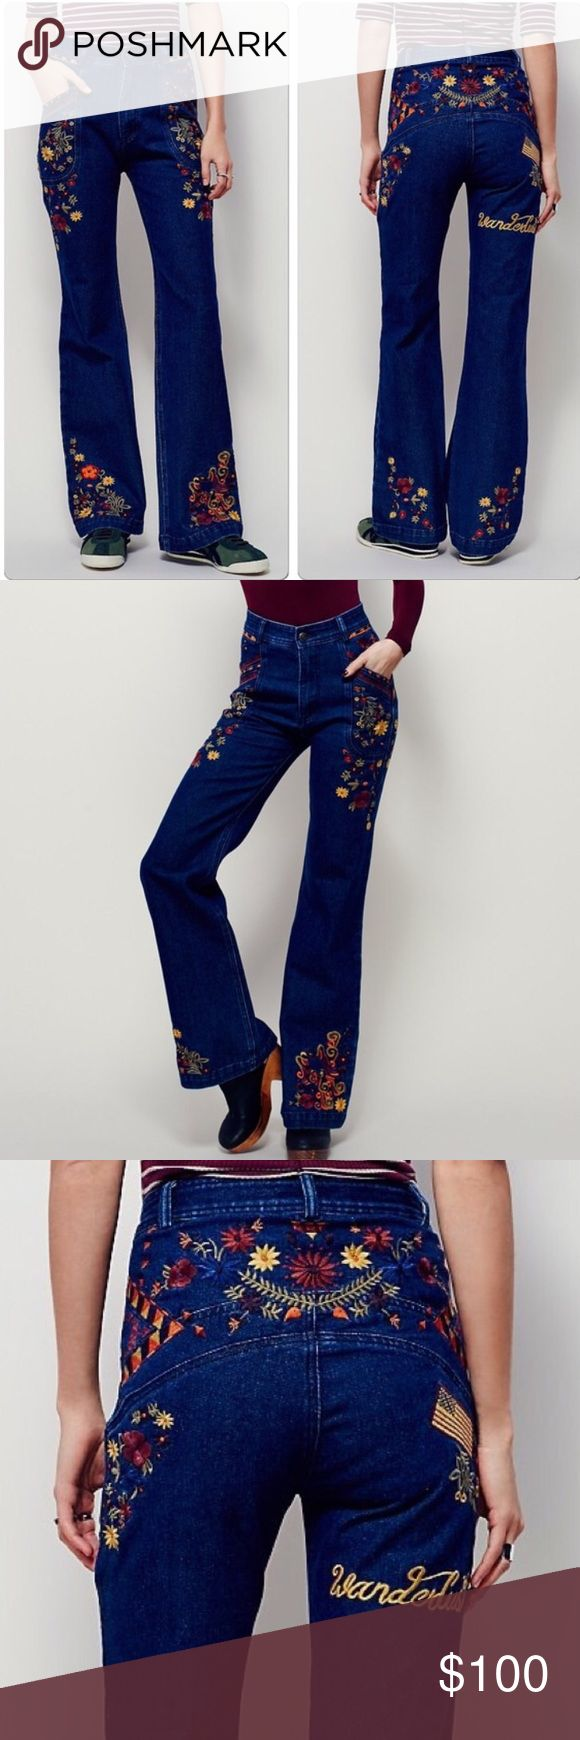 Spell & the Gypsy Love Child Flares PRICE FIRM Amazing hard to find Spell & the Gypsy Collective Love Child embroidered jeans. Beautiful retro design with rich colored embroidered flowers on the front and back with a flag and Wanderlust across the back of the right leg. Make a statement in these awesome jeans! Size XS - equivalent to a US size 2. New with tags! ❌No trades Spell & The Gypsy Collective Jeans Flare & Wide Leg